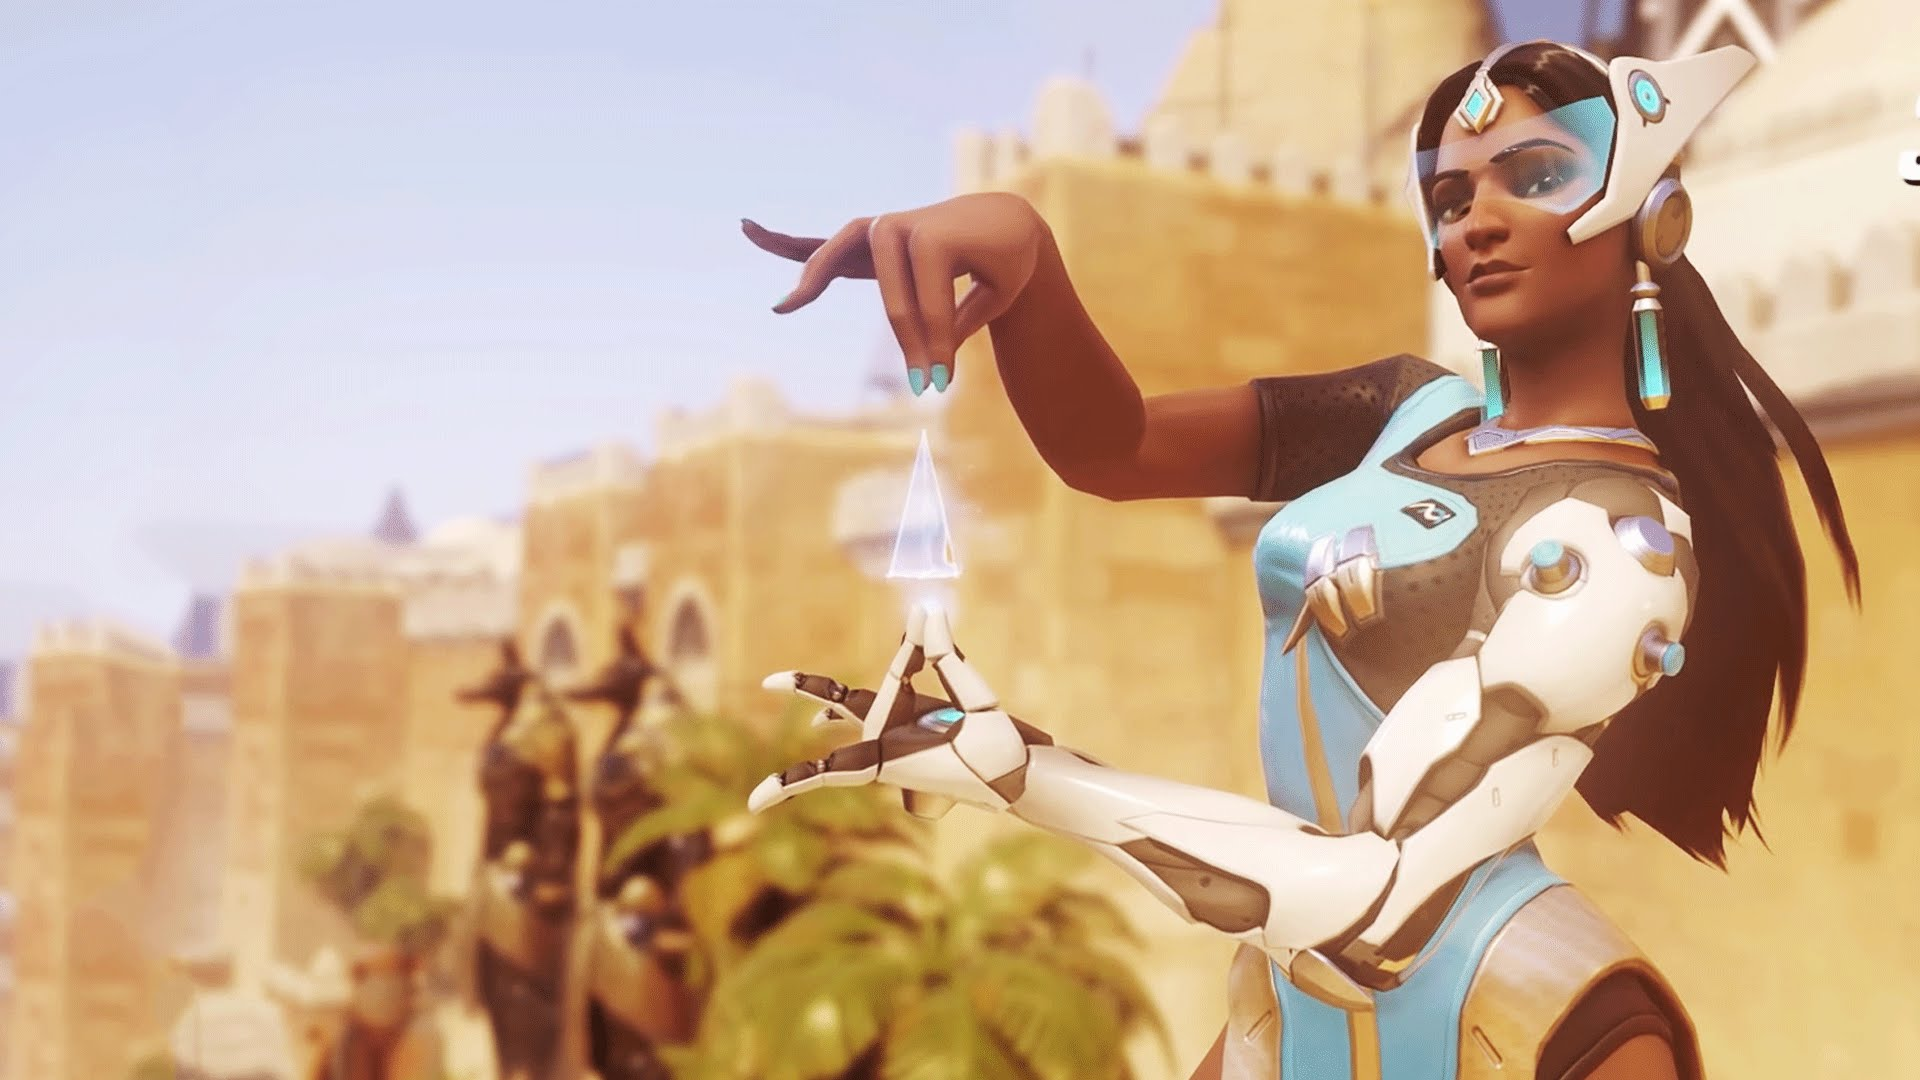 Overwatch : Symmetra Wallpapers hd